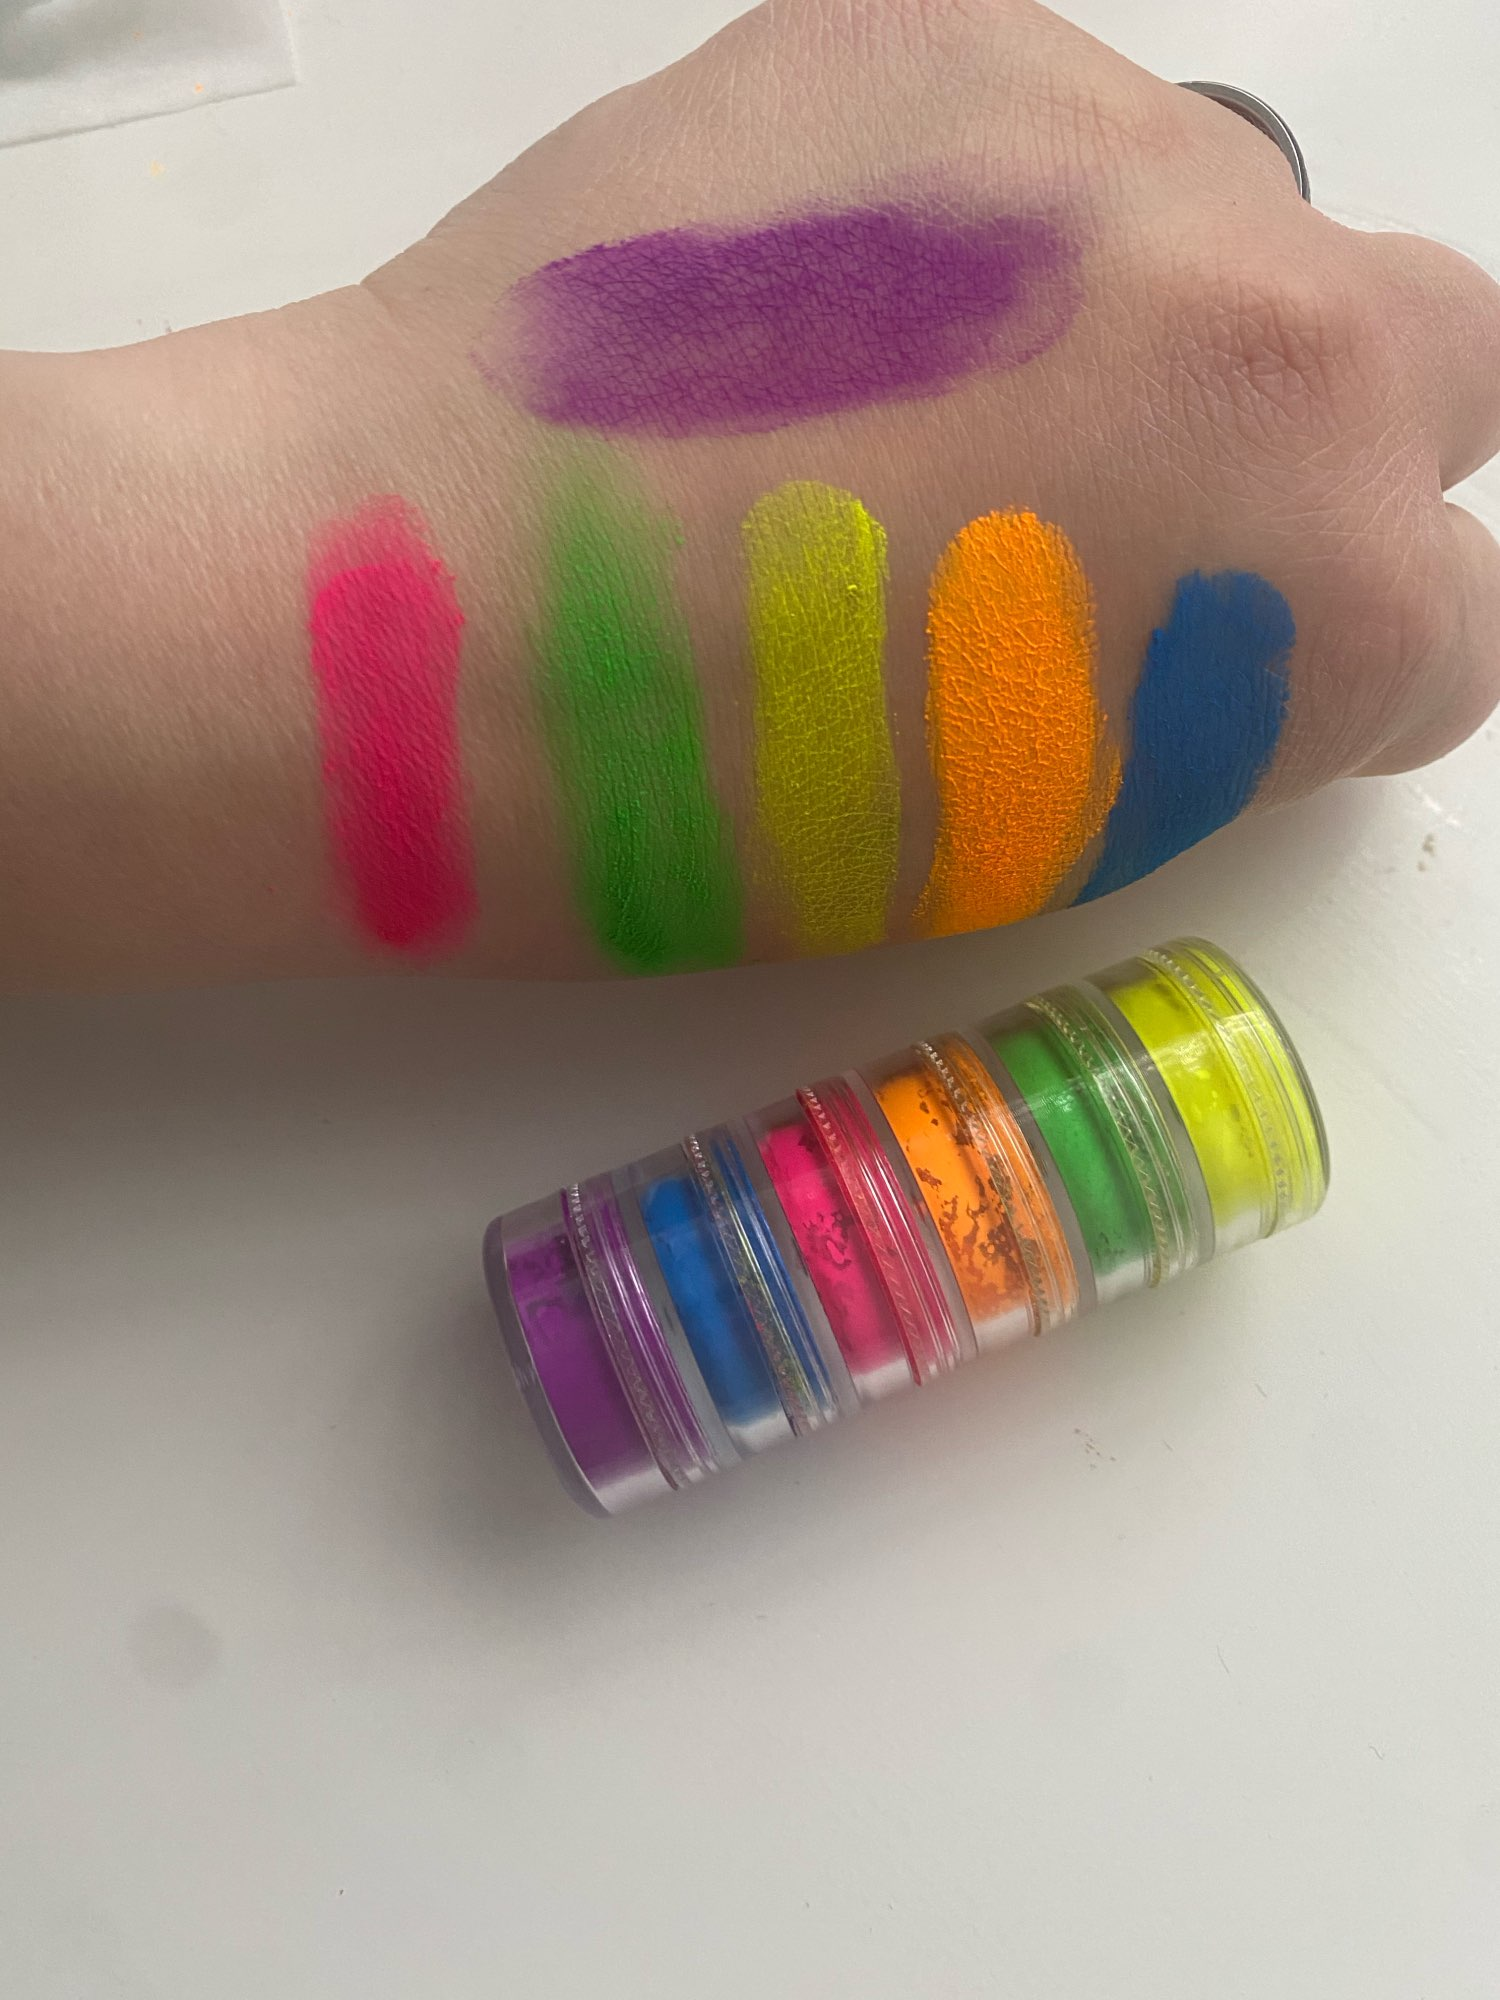 Colorful Eye Shadow Mixed Neon Powder 6 Colors Eyeshadow Nail Art Matte Glitter Easy to Wear Cosmetic Makeup TSLM1 photo review